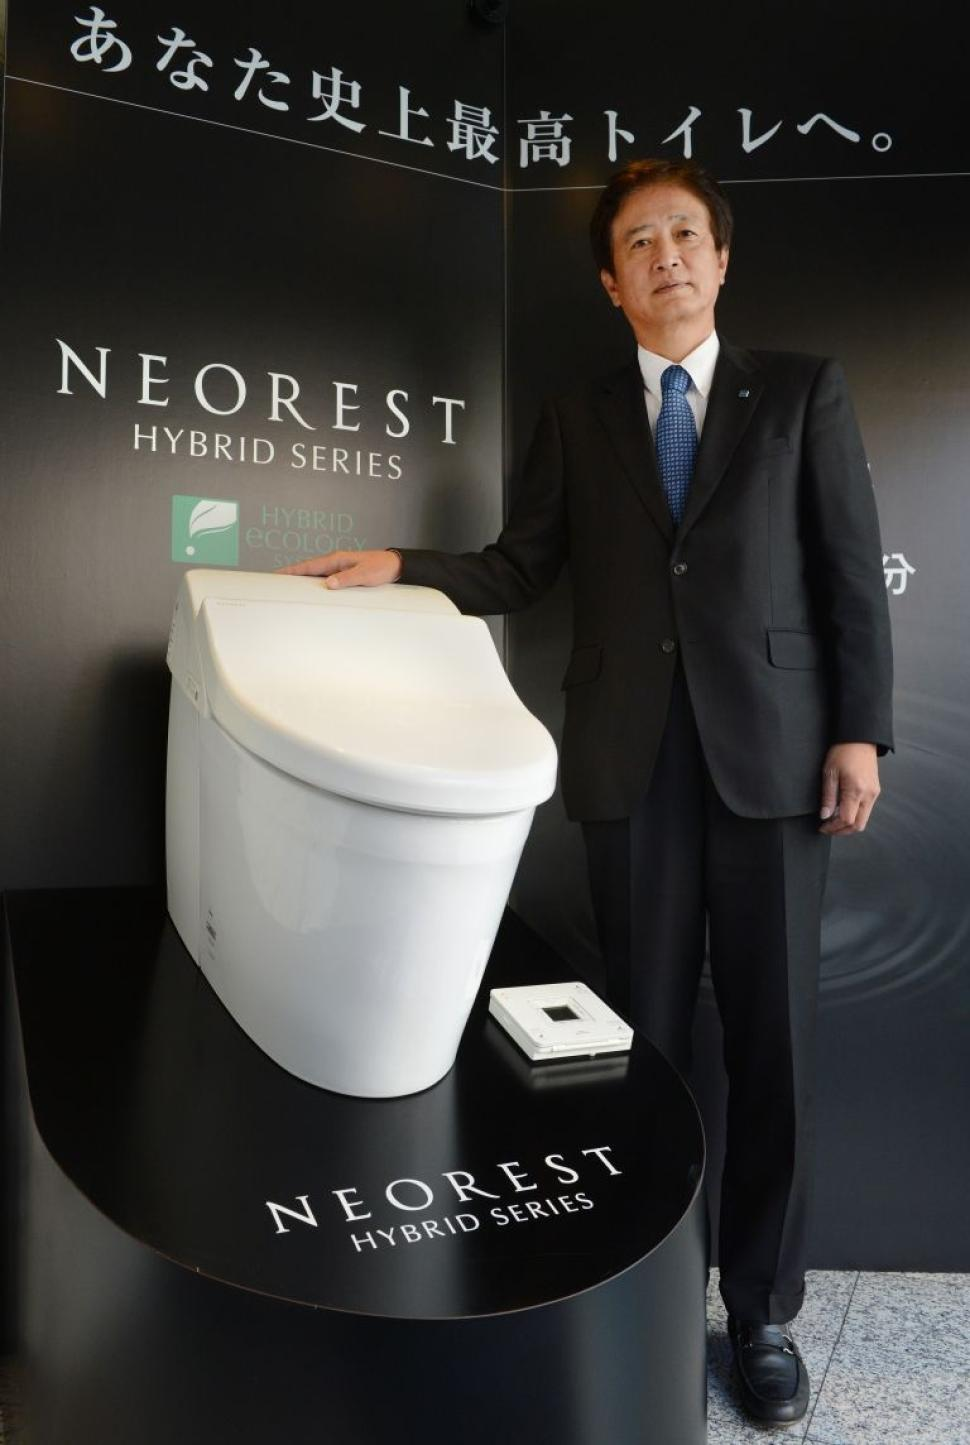 neorest hybrid series of toto toilets for inspiring toilet furniture ideas